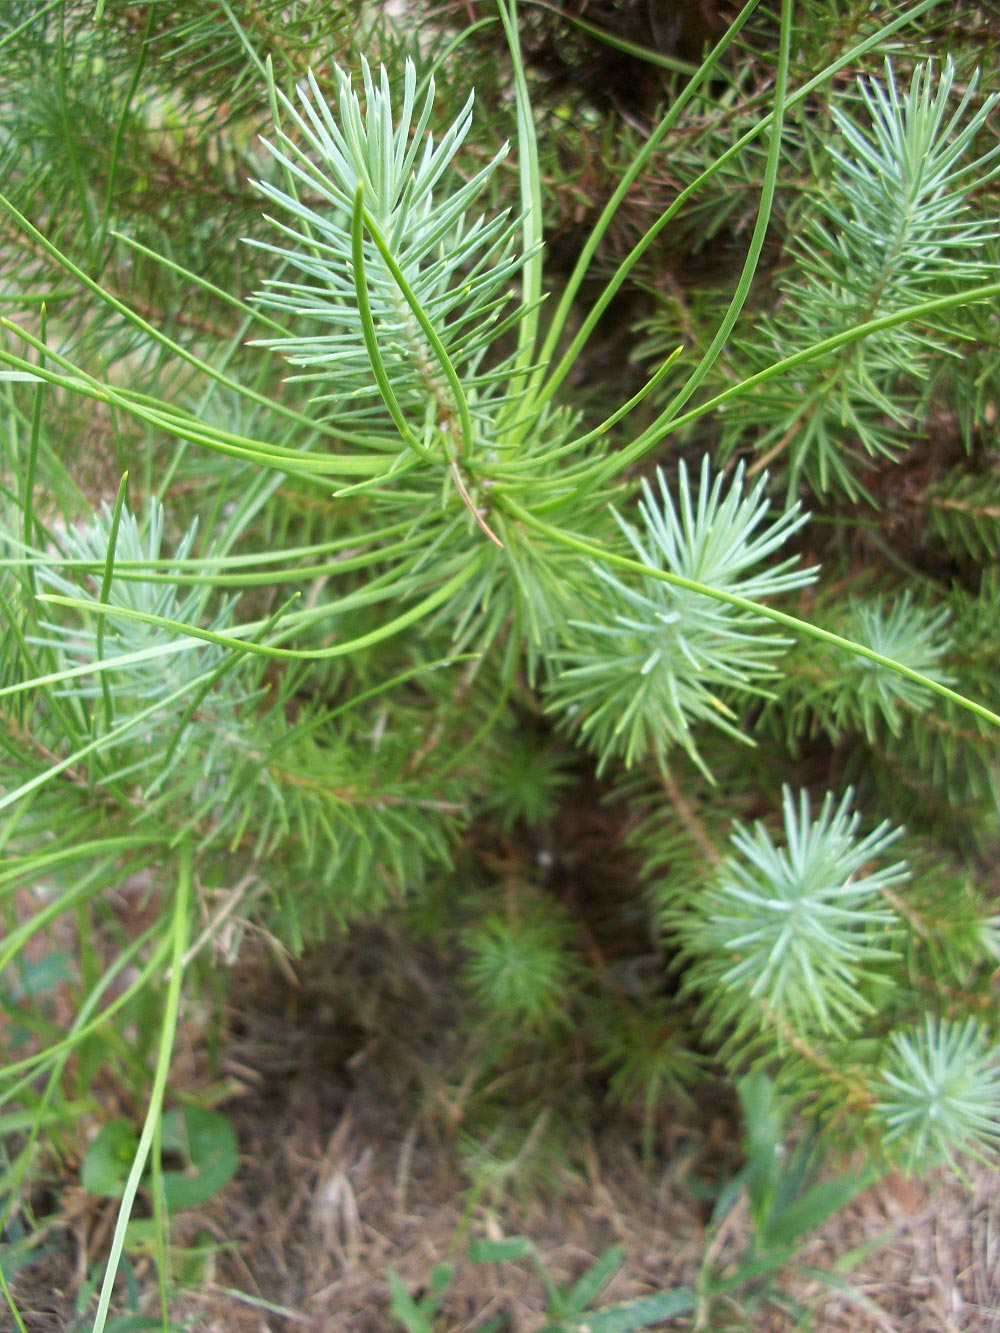 Italian stone pine - juvenile foliage and mature foliage